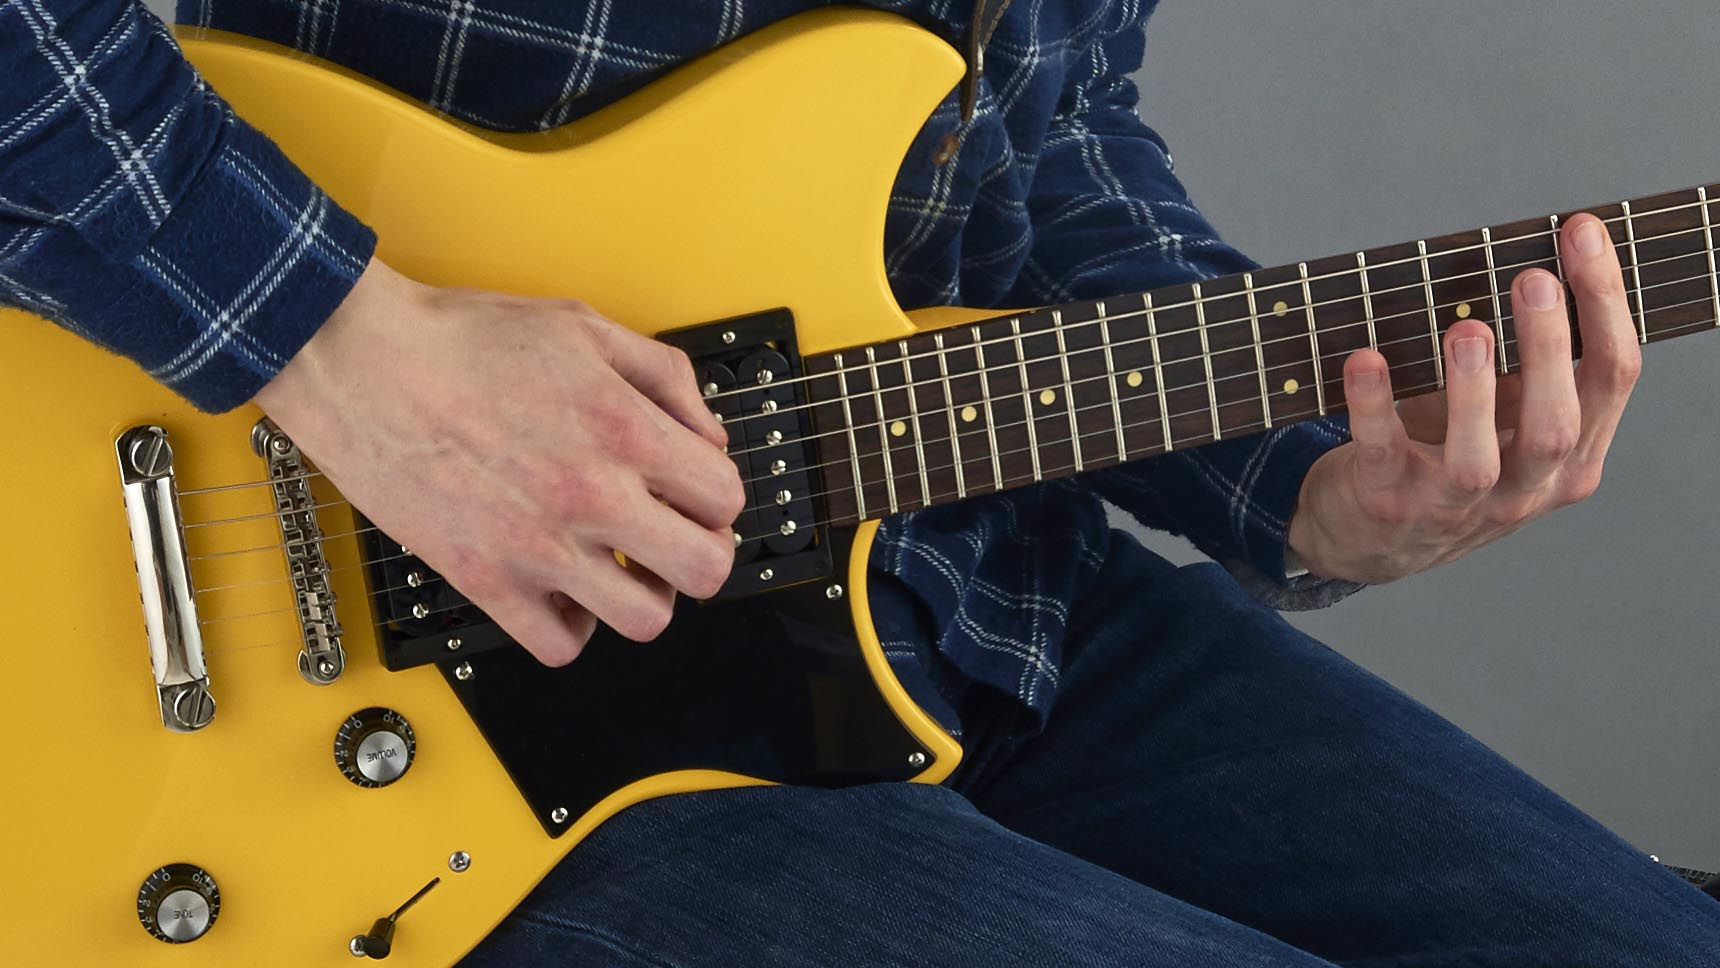 Guitar Basics How To Solo Over A 12 Bar Blues Chord Progression